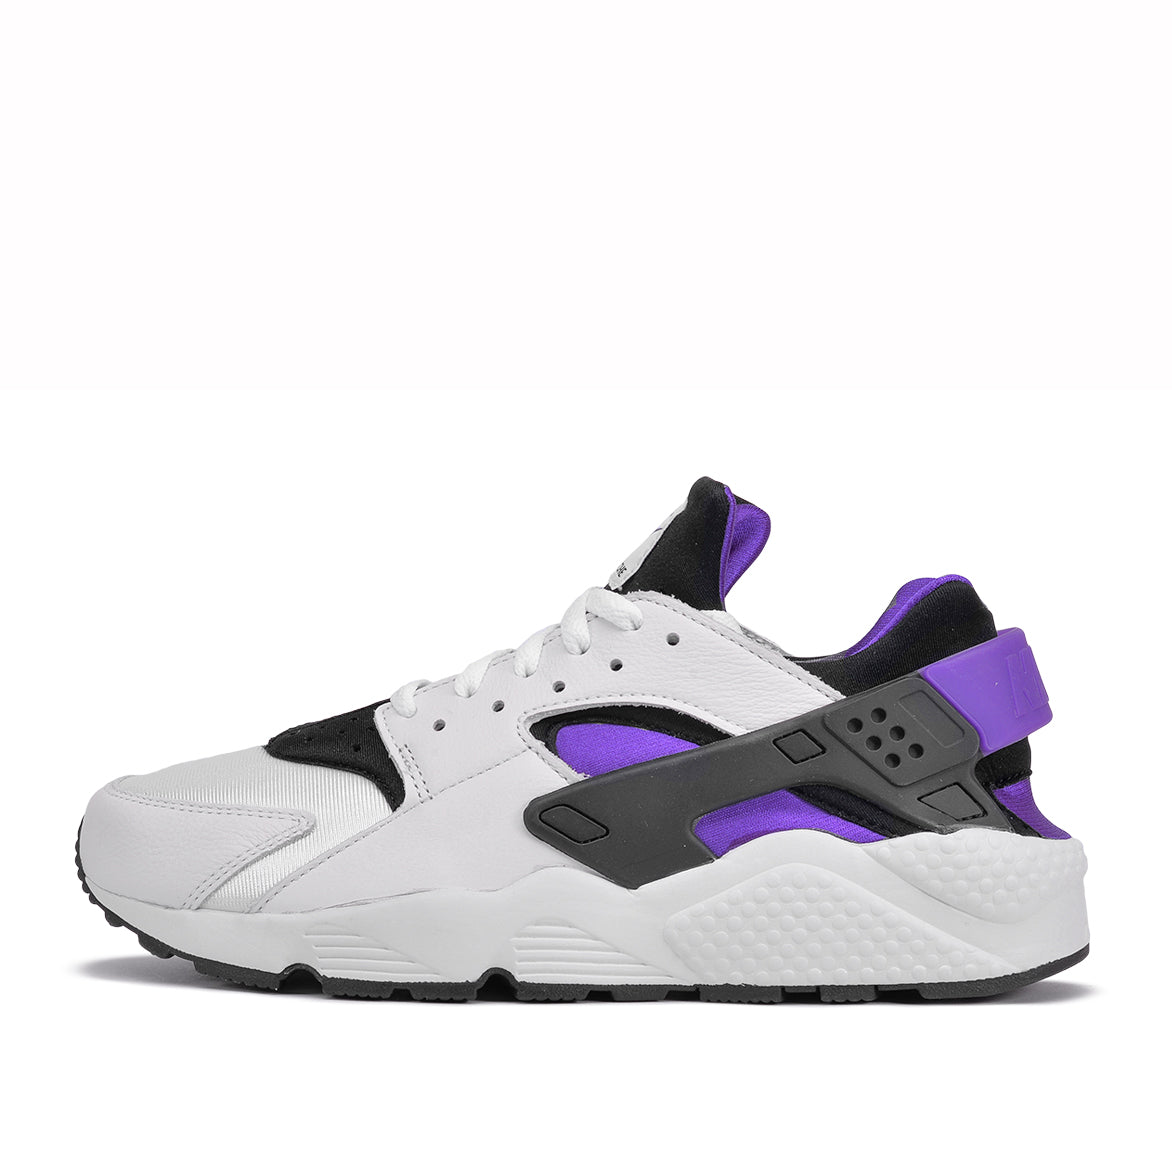 "NIKE AIR HUARACHE RUN `91 QS ""PURPLE PUNCH"""